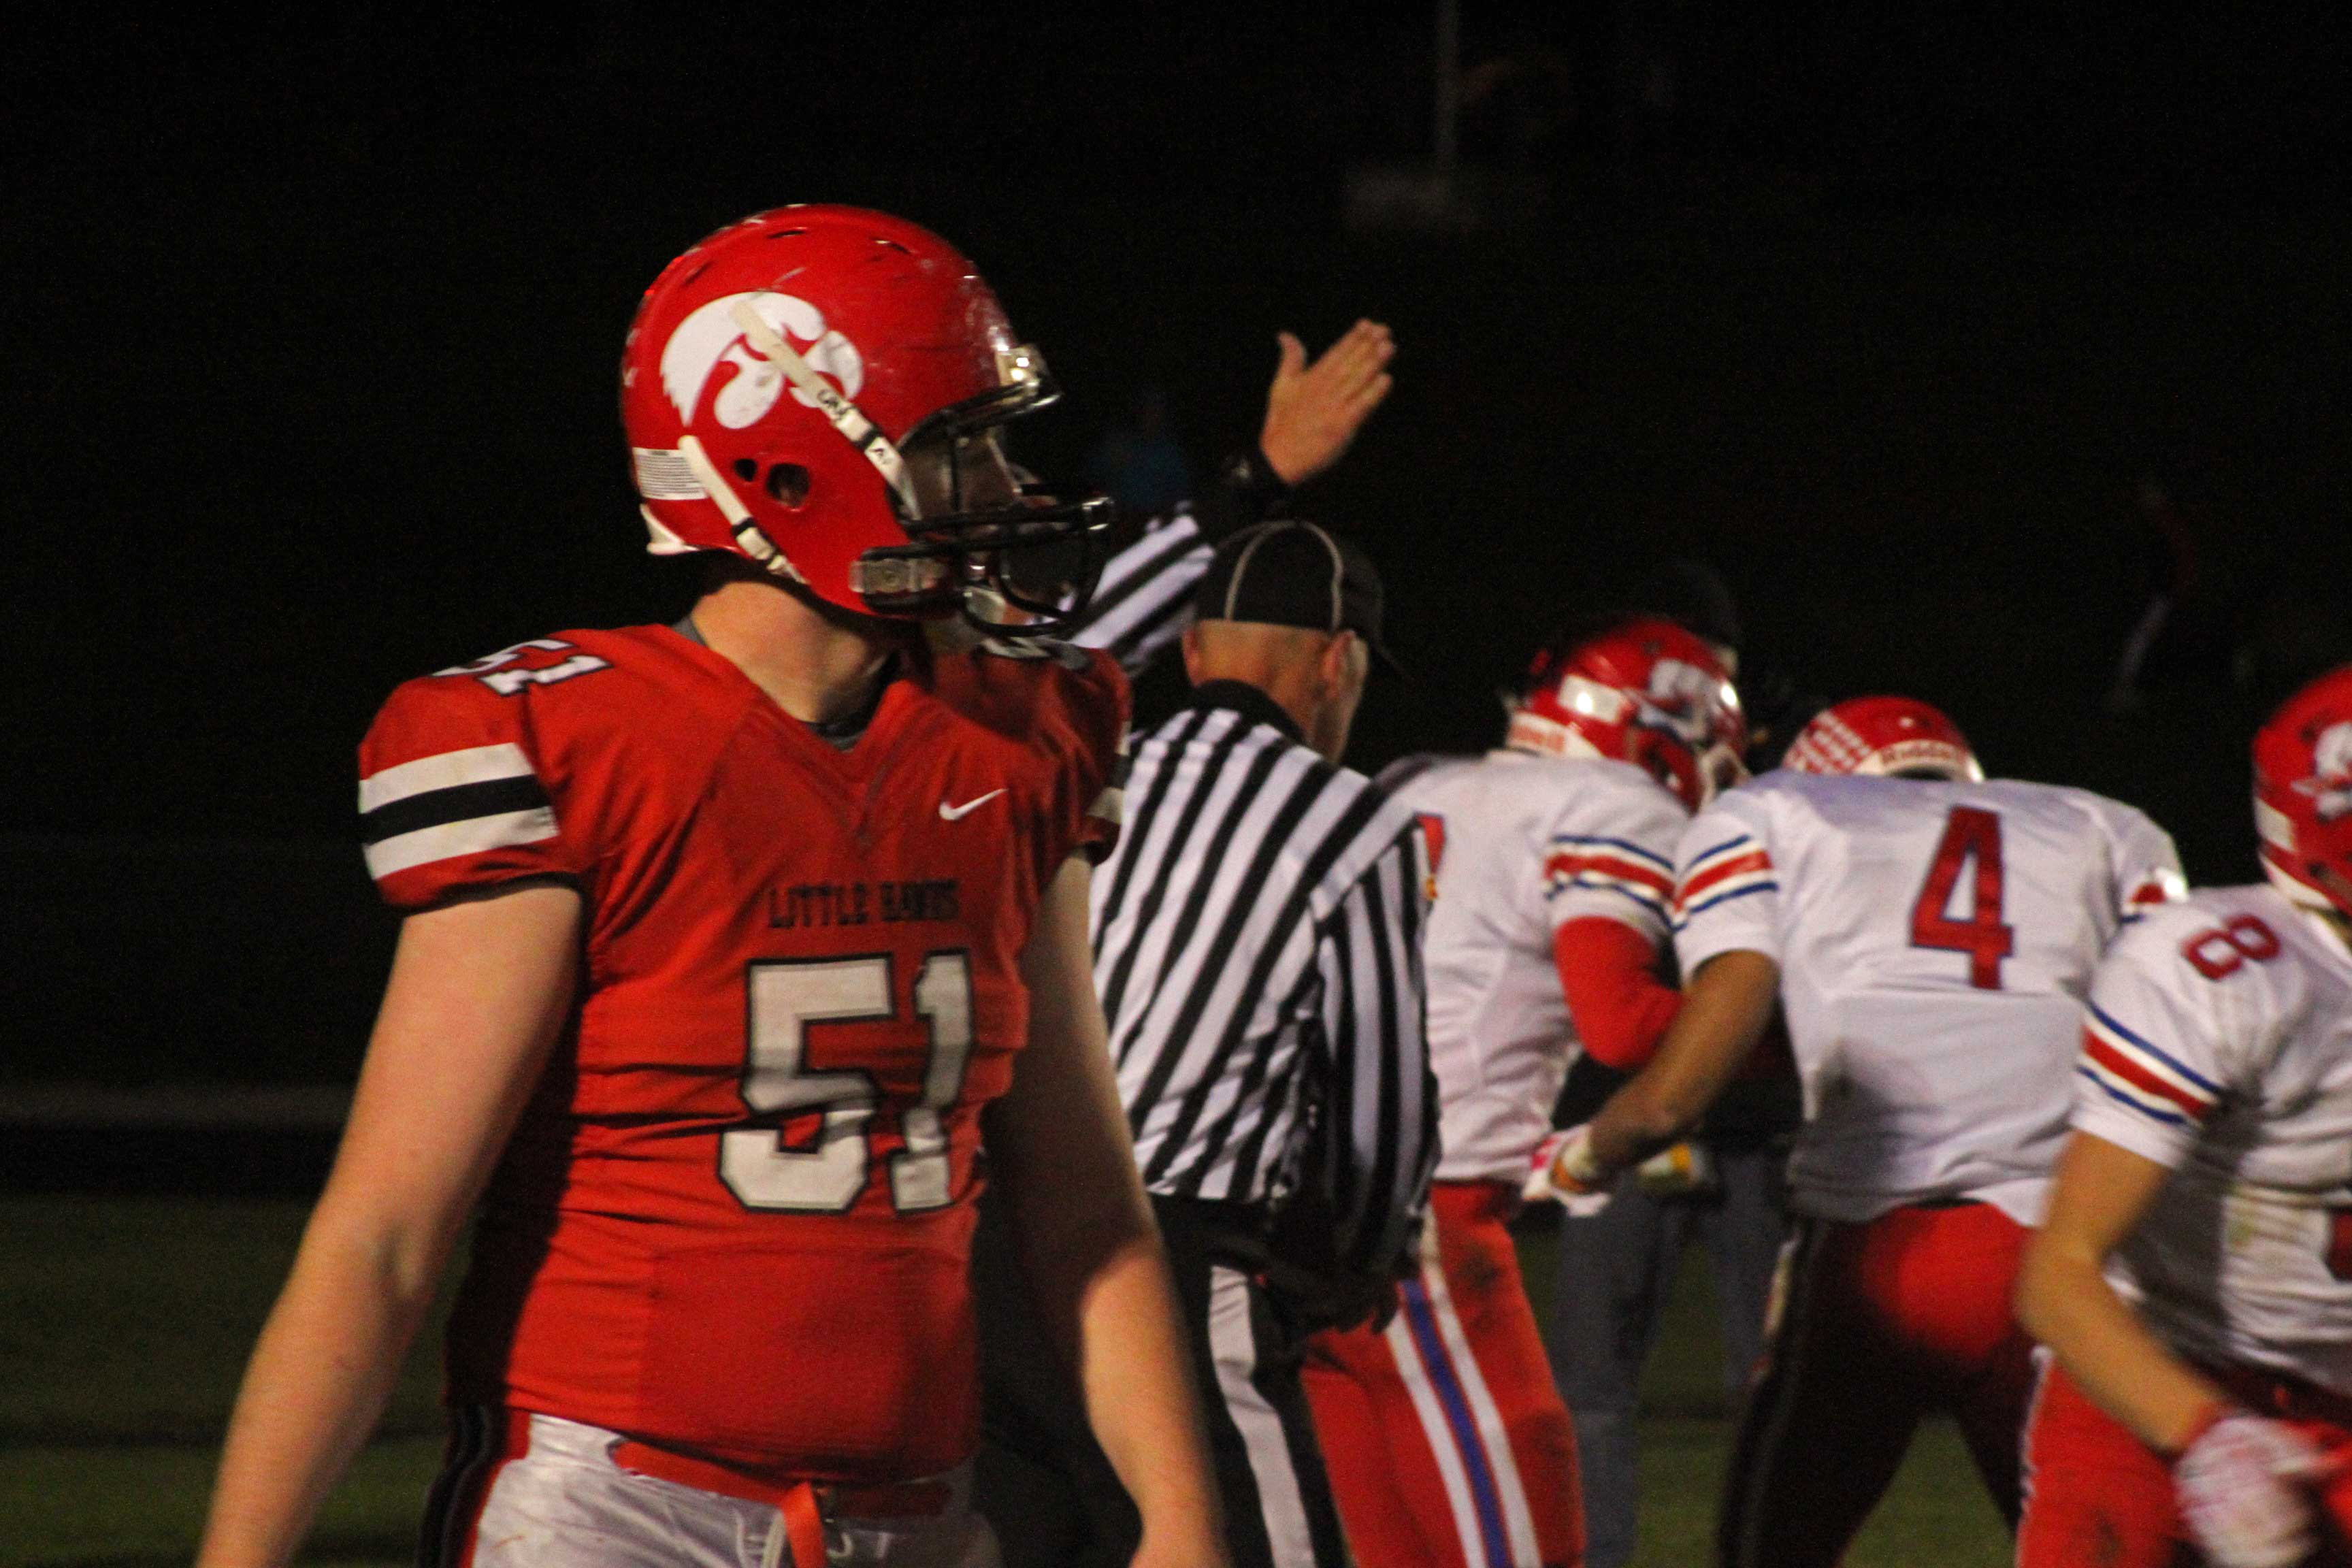 Patrick Henkhaus '16 walks back to the sideline as the officials rule the fumble in the end zone a Warrior ball.